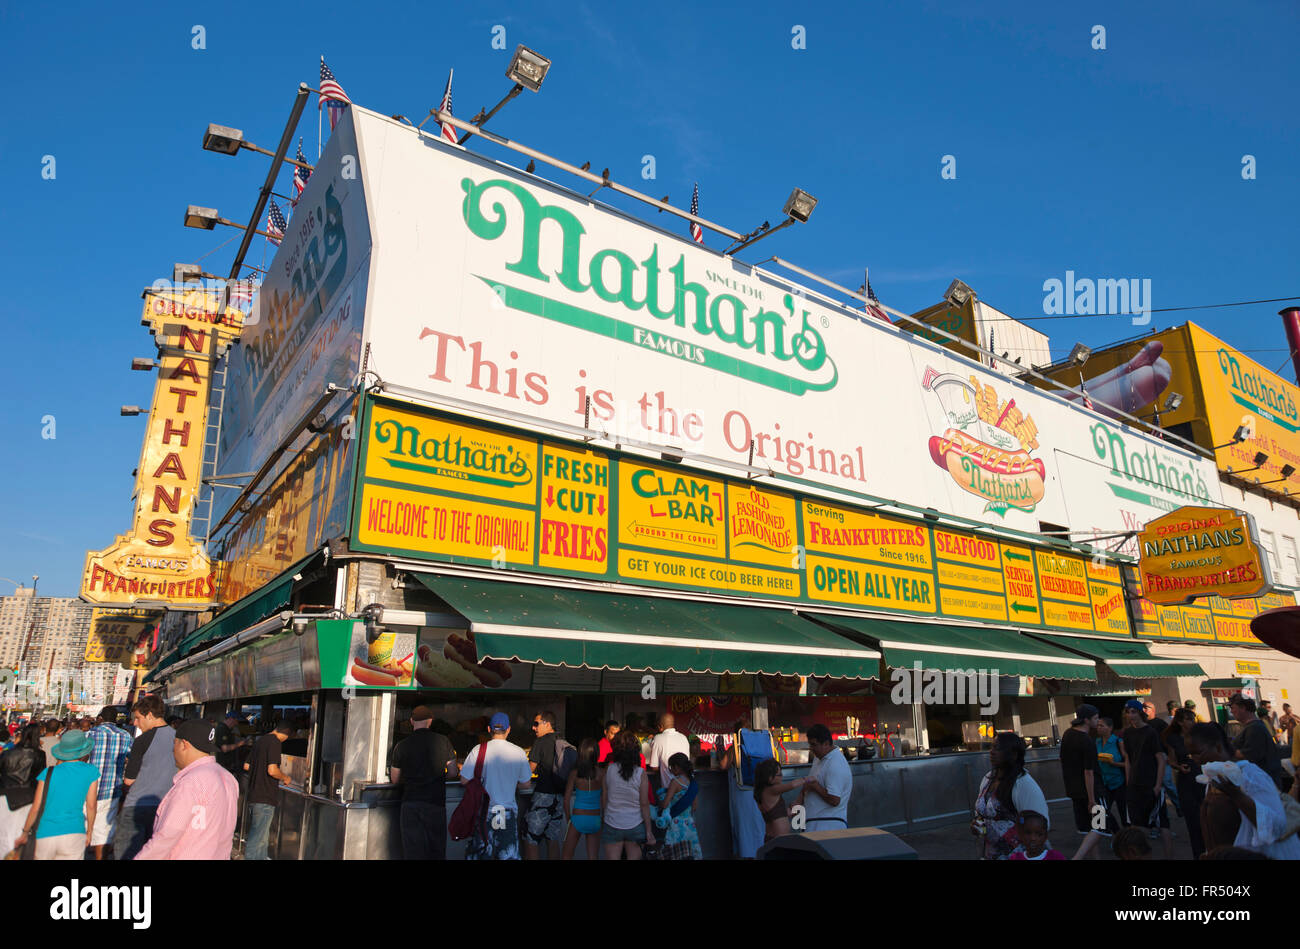 NATHANS FAMOUS HOT DOG STAND SURF AVENUE CONEY ISLAND BROOKLYN NEW YORK CITY USA - Stock Image